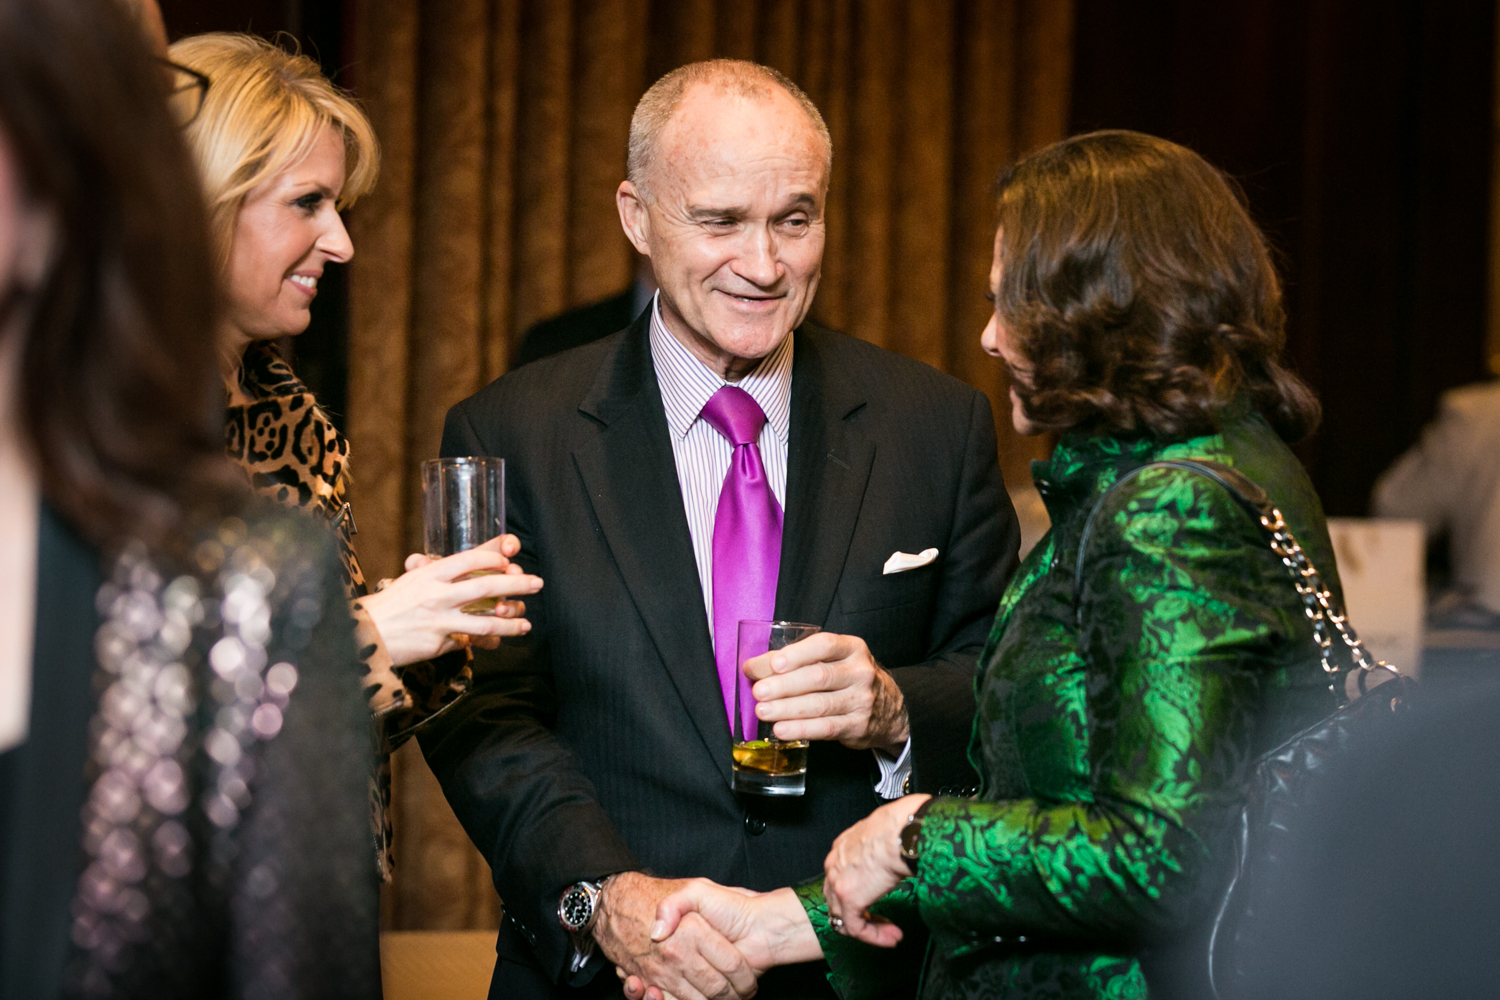 Ray Kelly, former NYPD Police Commissioner, by NYC photojournalist, Kelly Williams